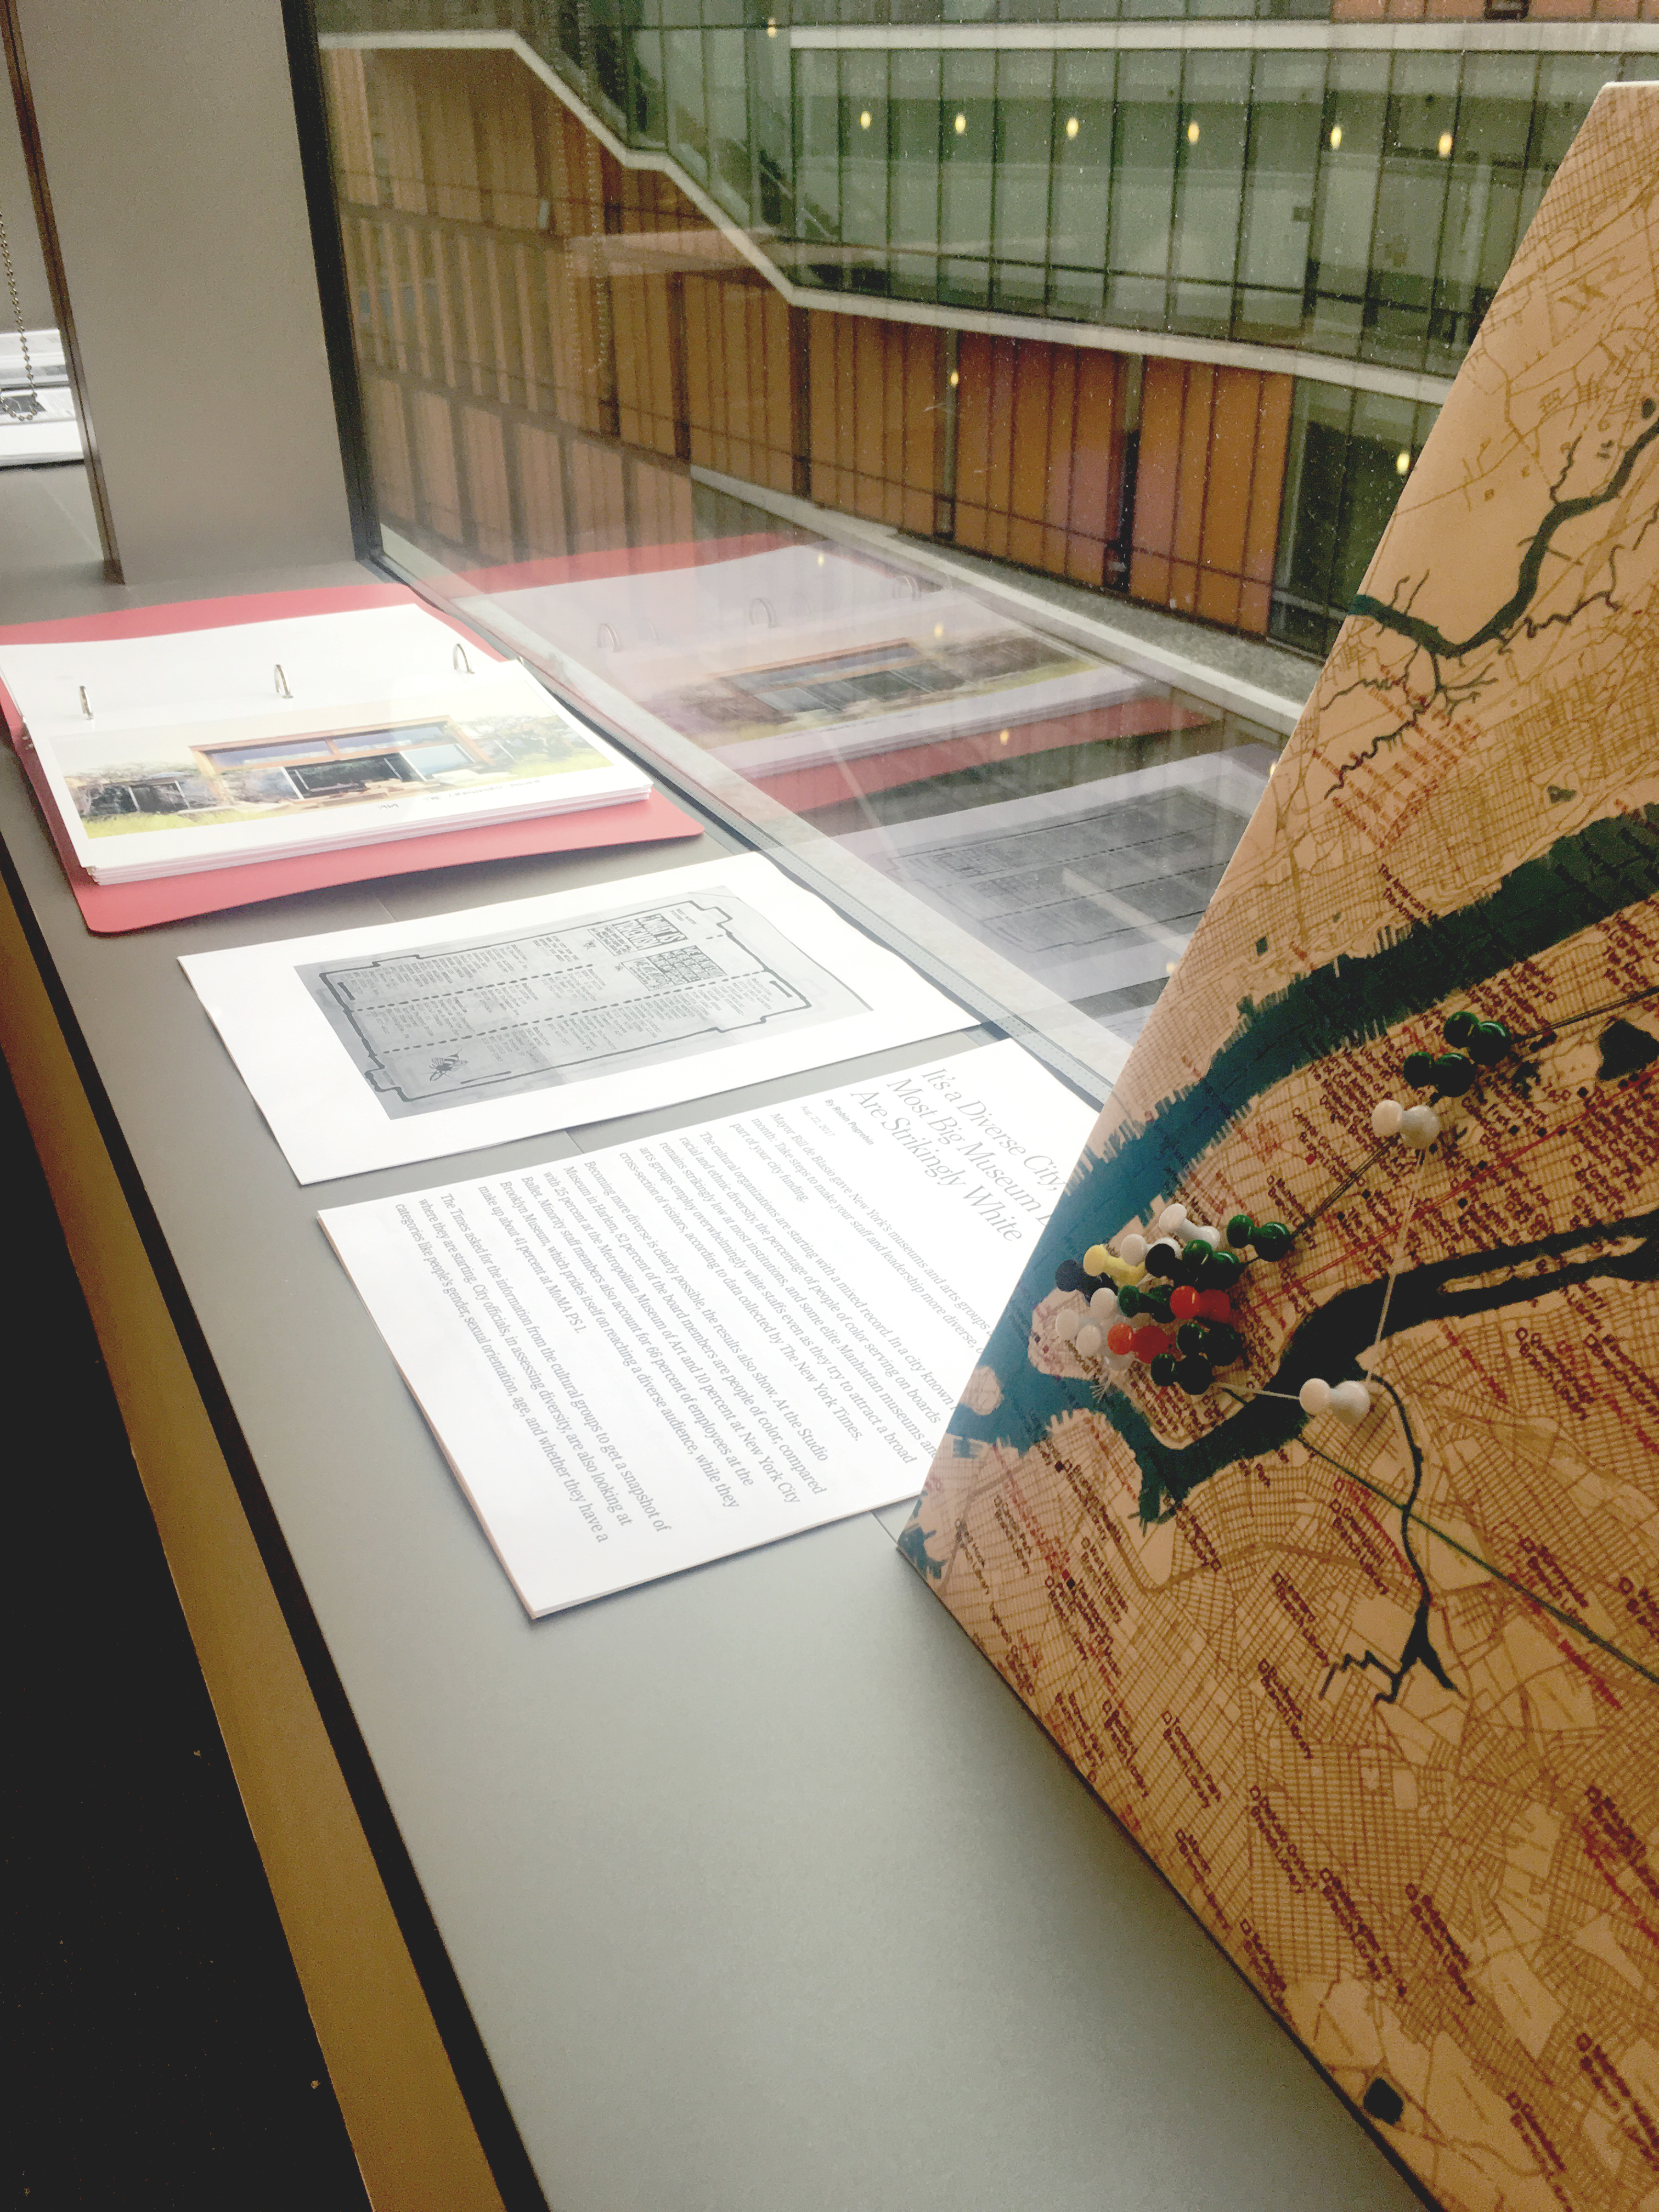 Materials from Professor Siddiqi's class are laid out on a window sill, available for the exhibit's visitors to peruse.